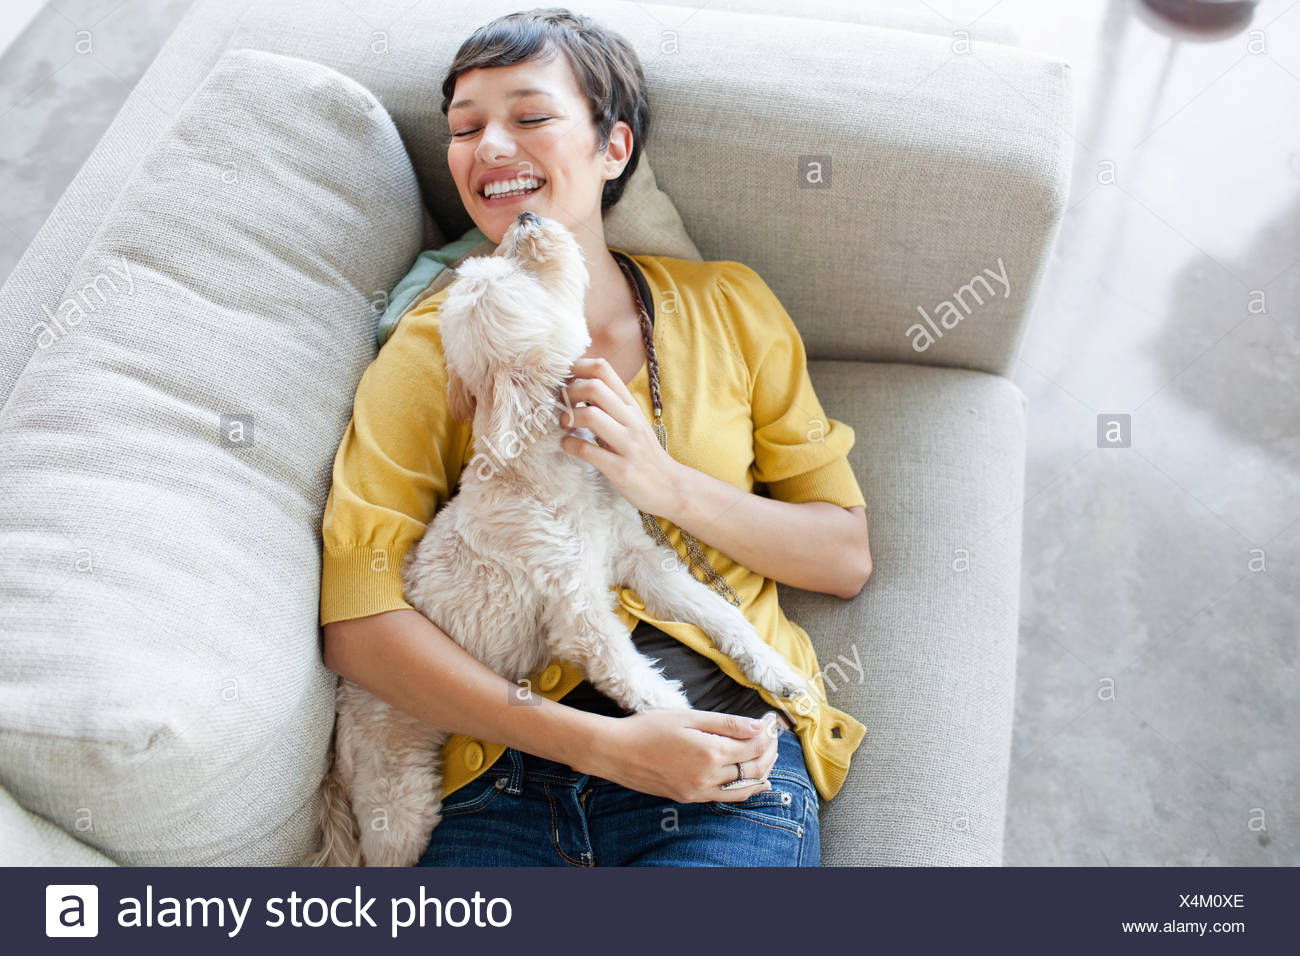 Young woman hugging dog on living room sofa - Stock Image